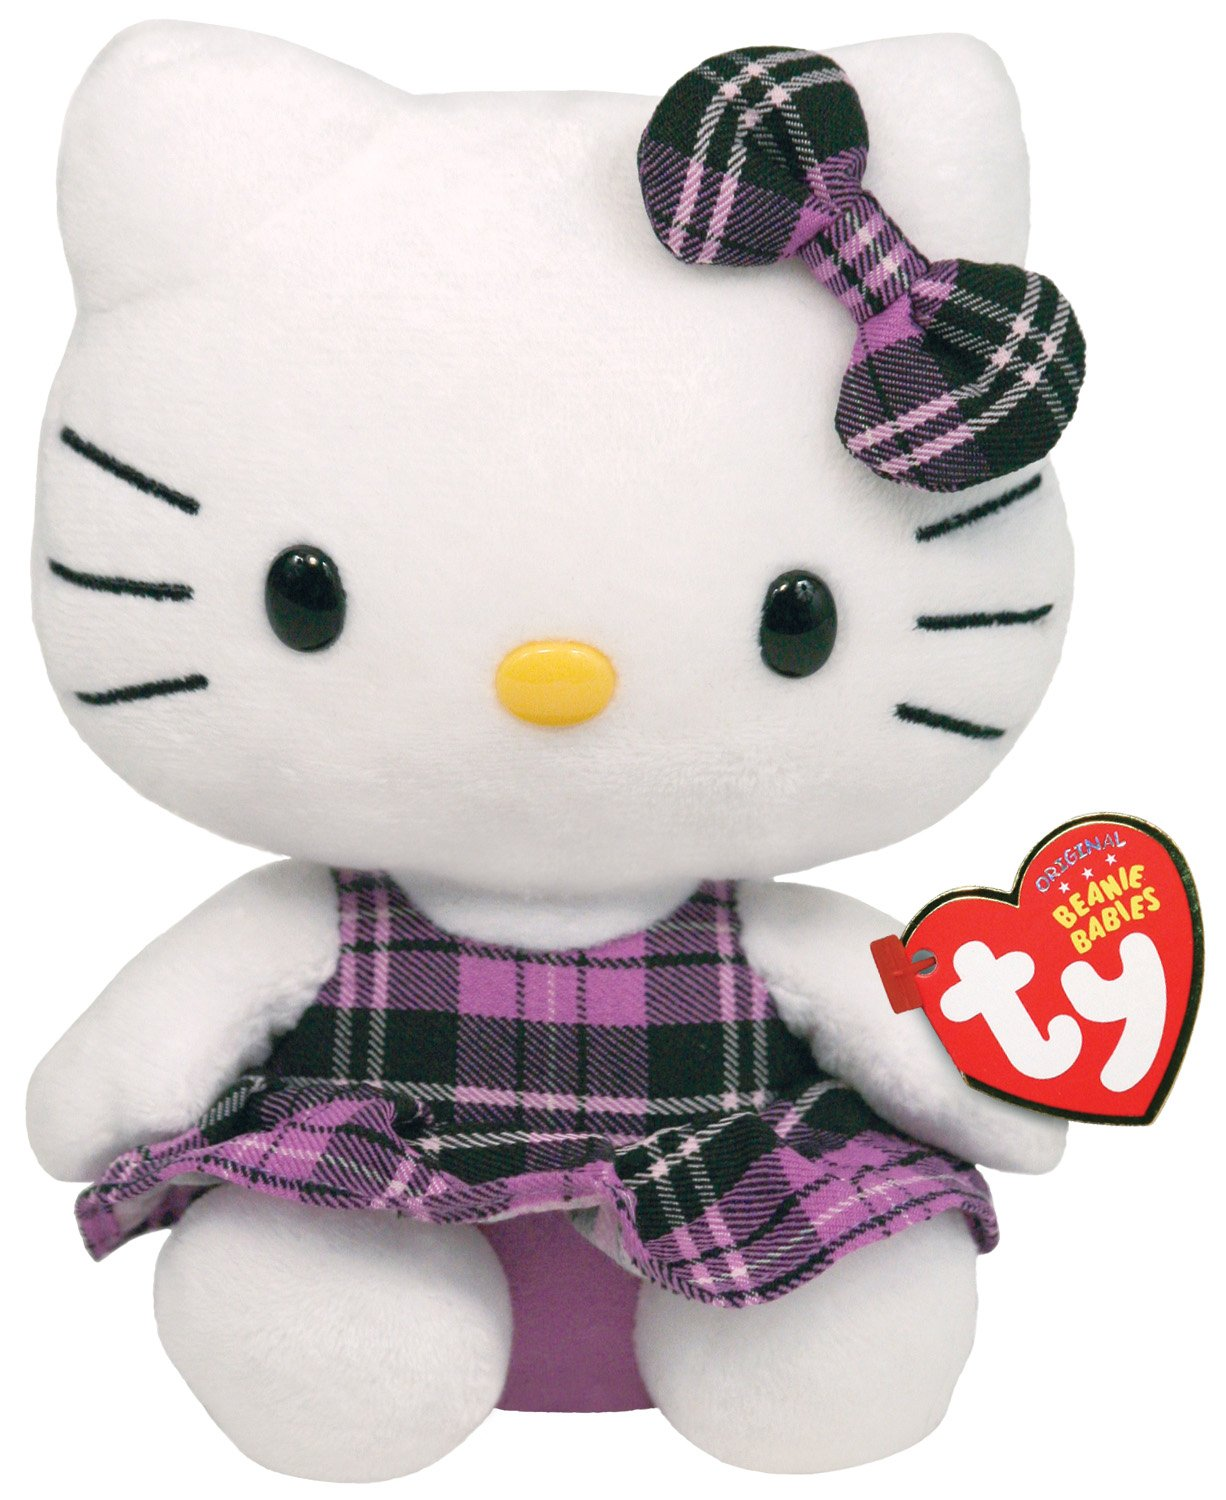 Hello Kitty - Schottenrockkleid 14 cm